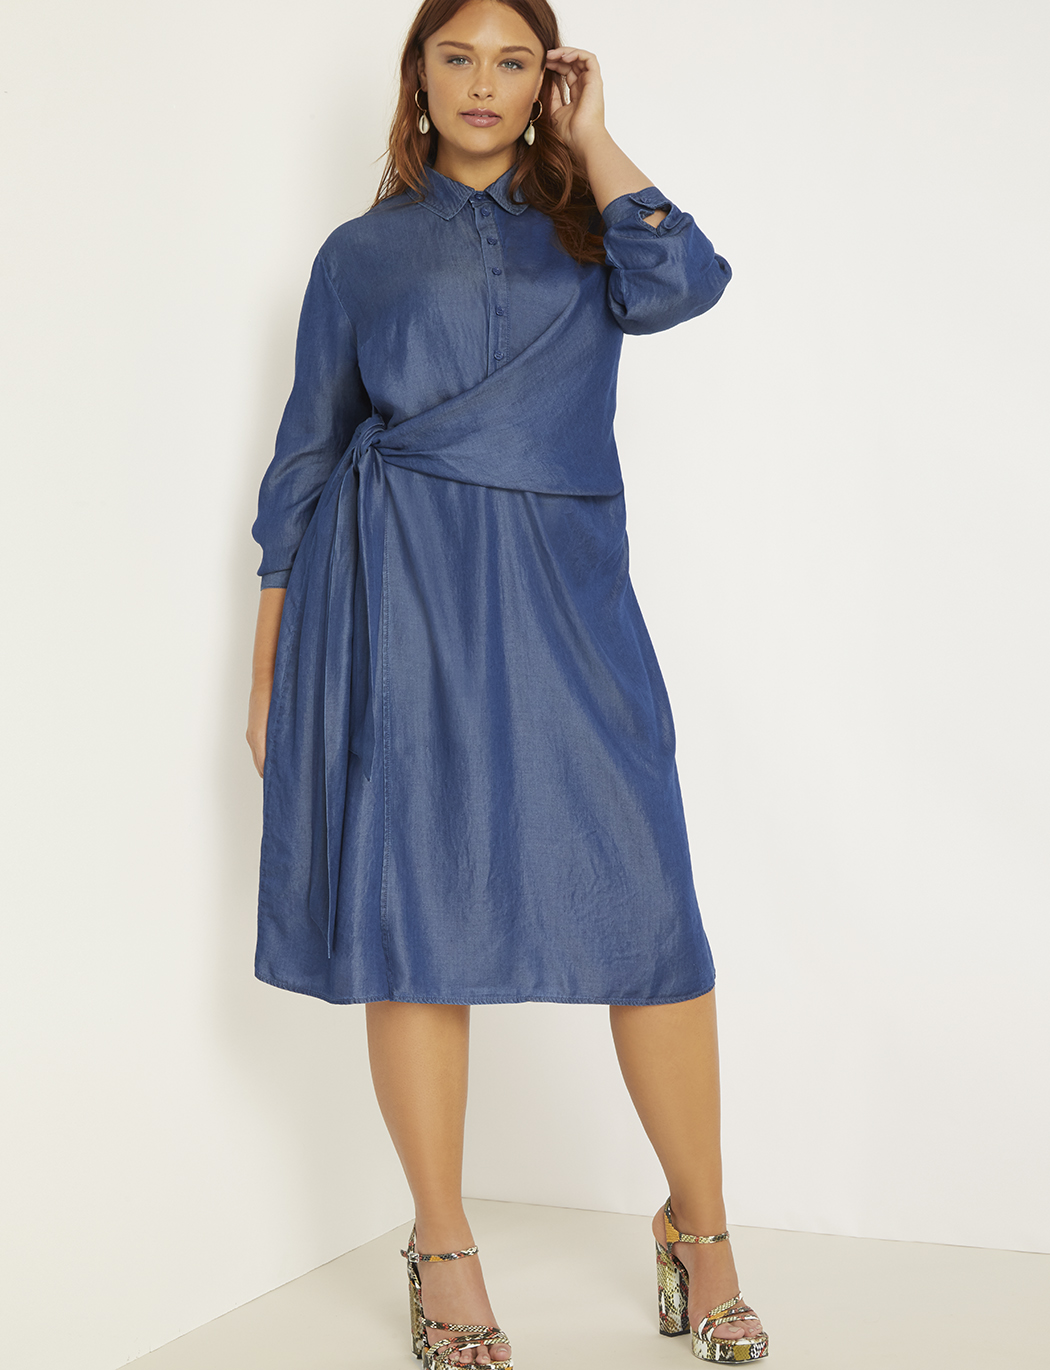 Cinched Waist Chambray Dress | Women\'s Plus Size Dresses | ELOQUII